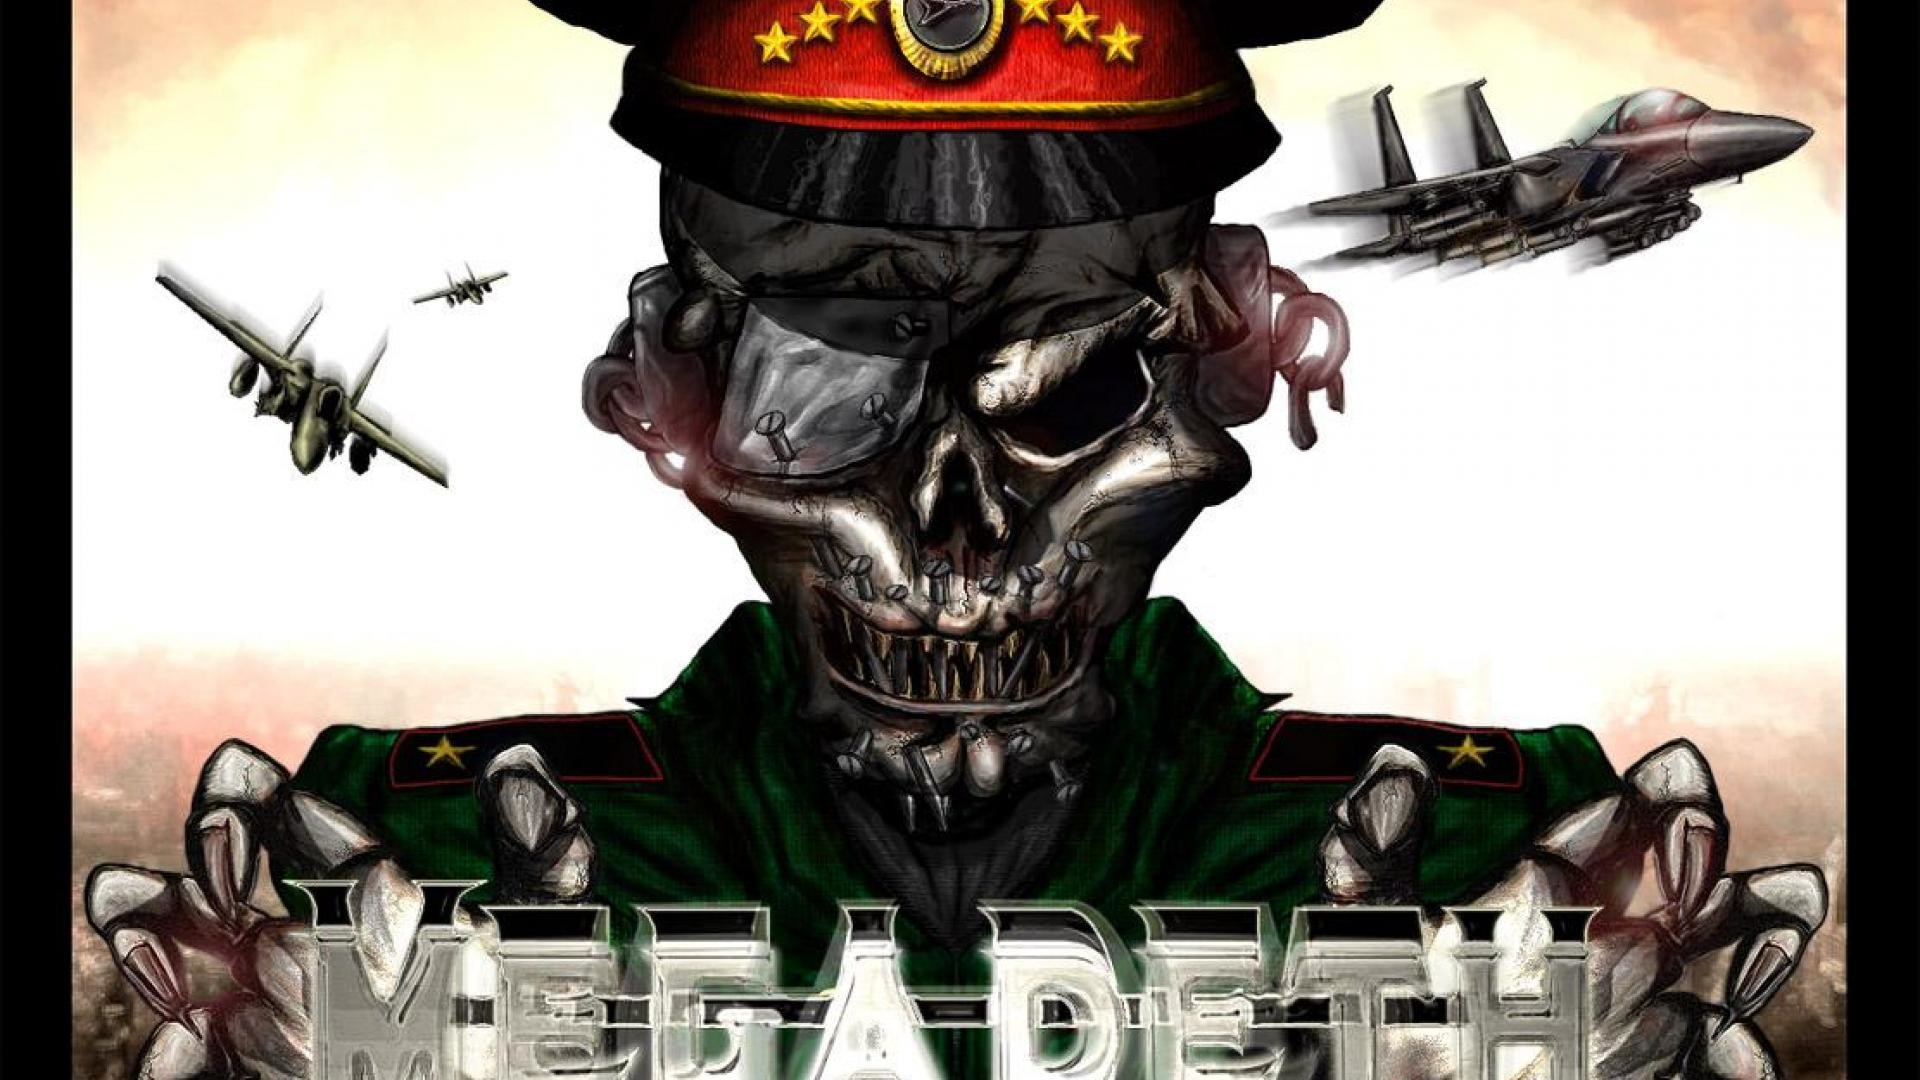 1920x1200 Download Megadeth Wallpapers To Your Cell Phone Black Heavy Logo 1920A 1200